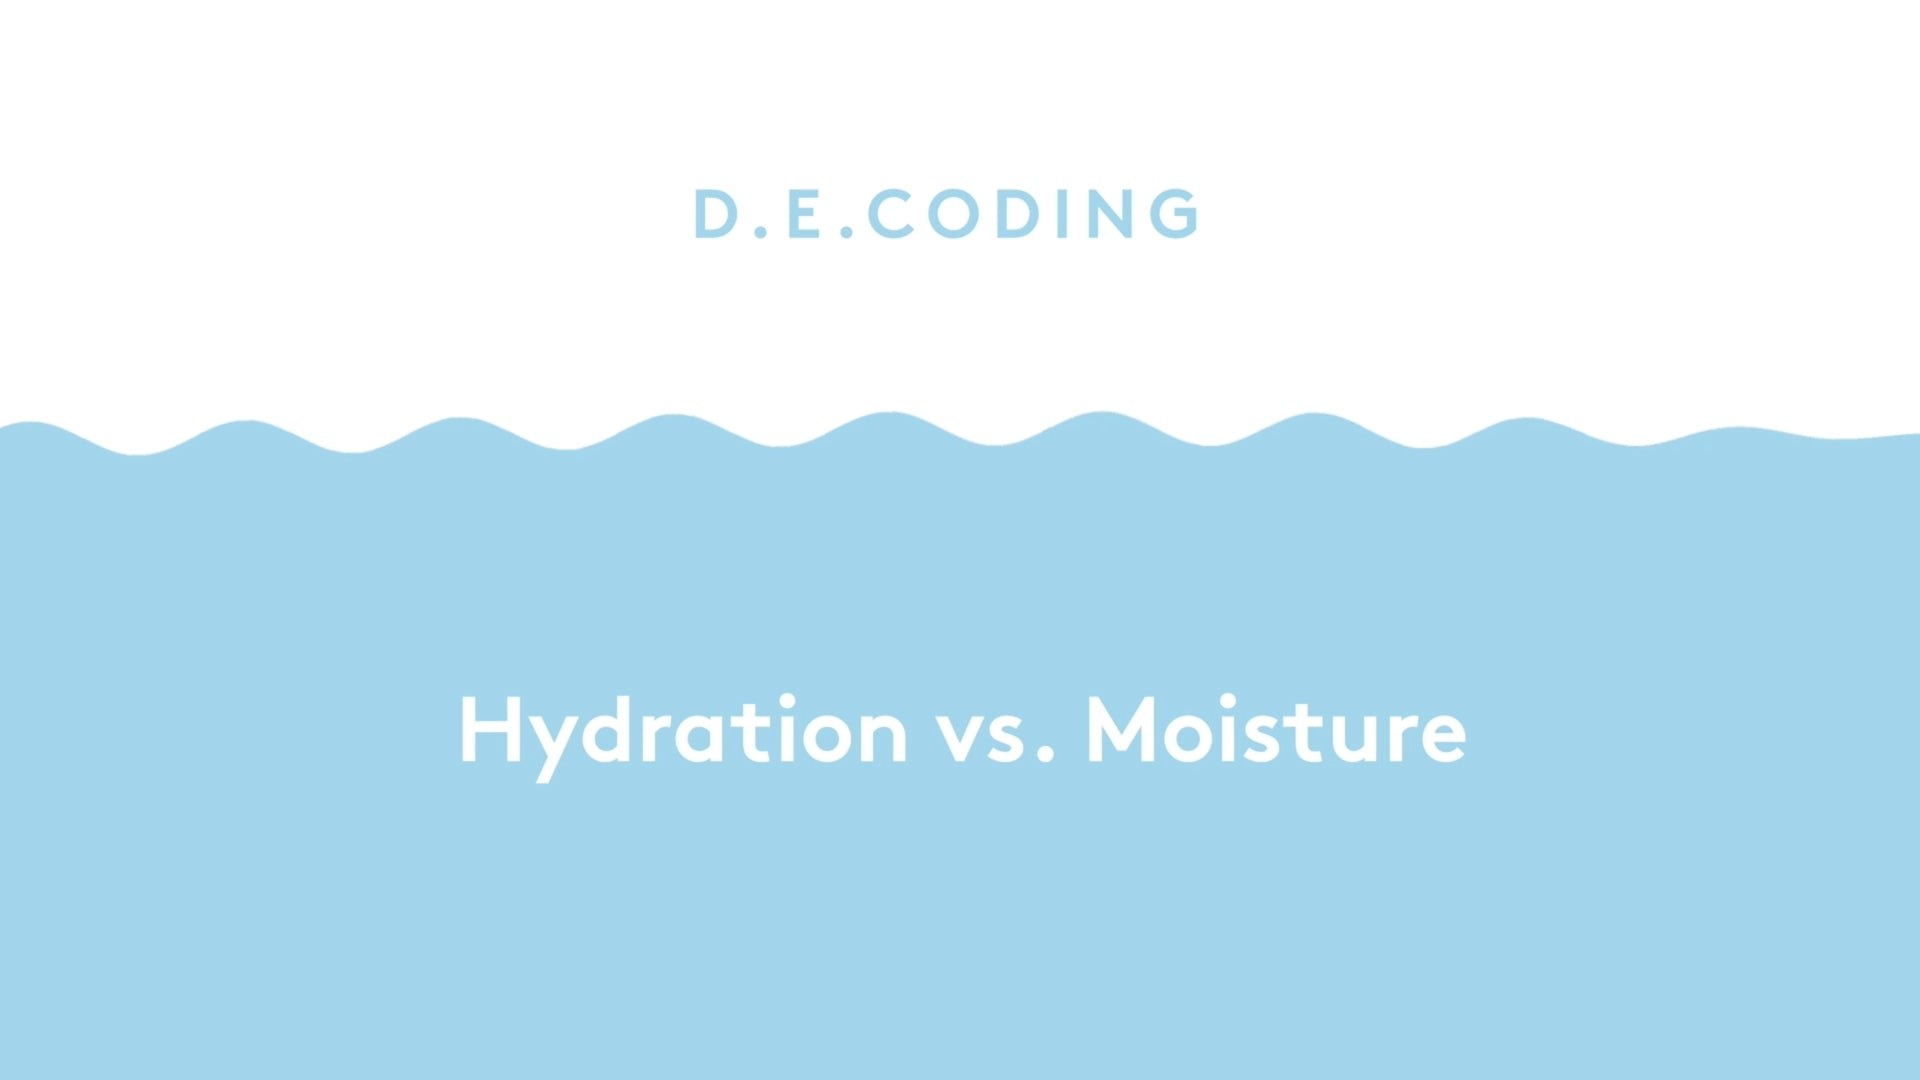 D.E. Coding Hydration v. Moisture, Light blue waves with white text